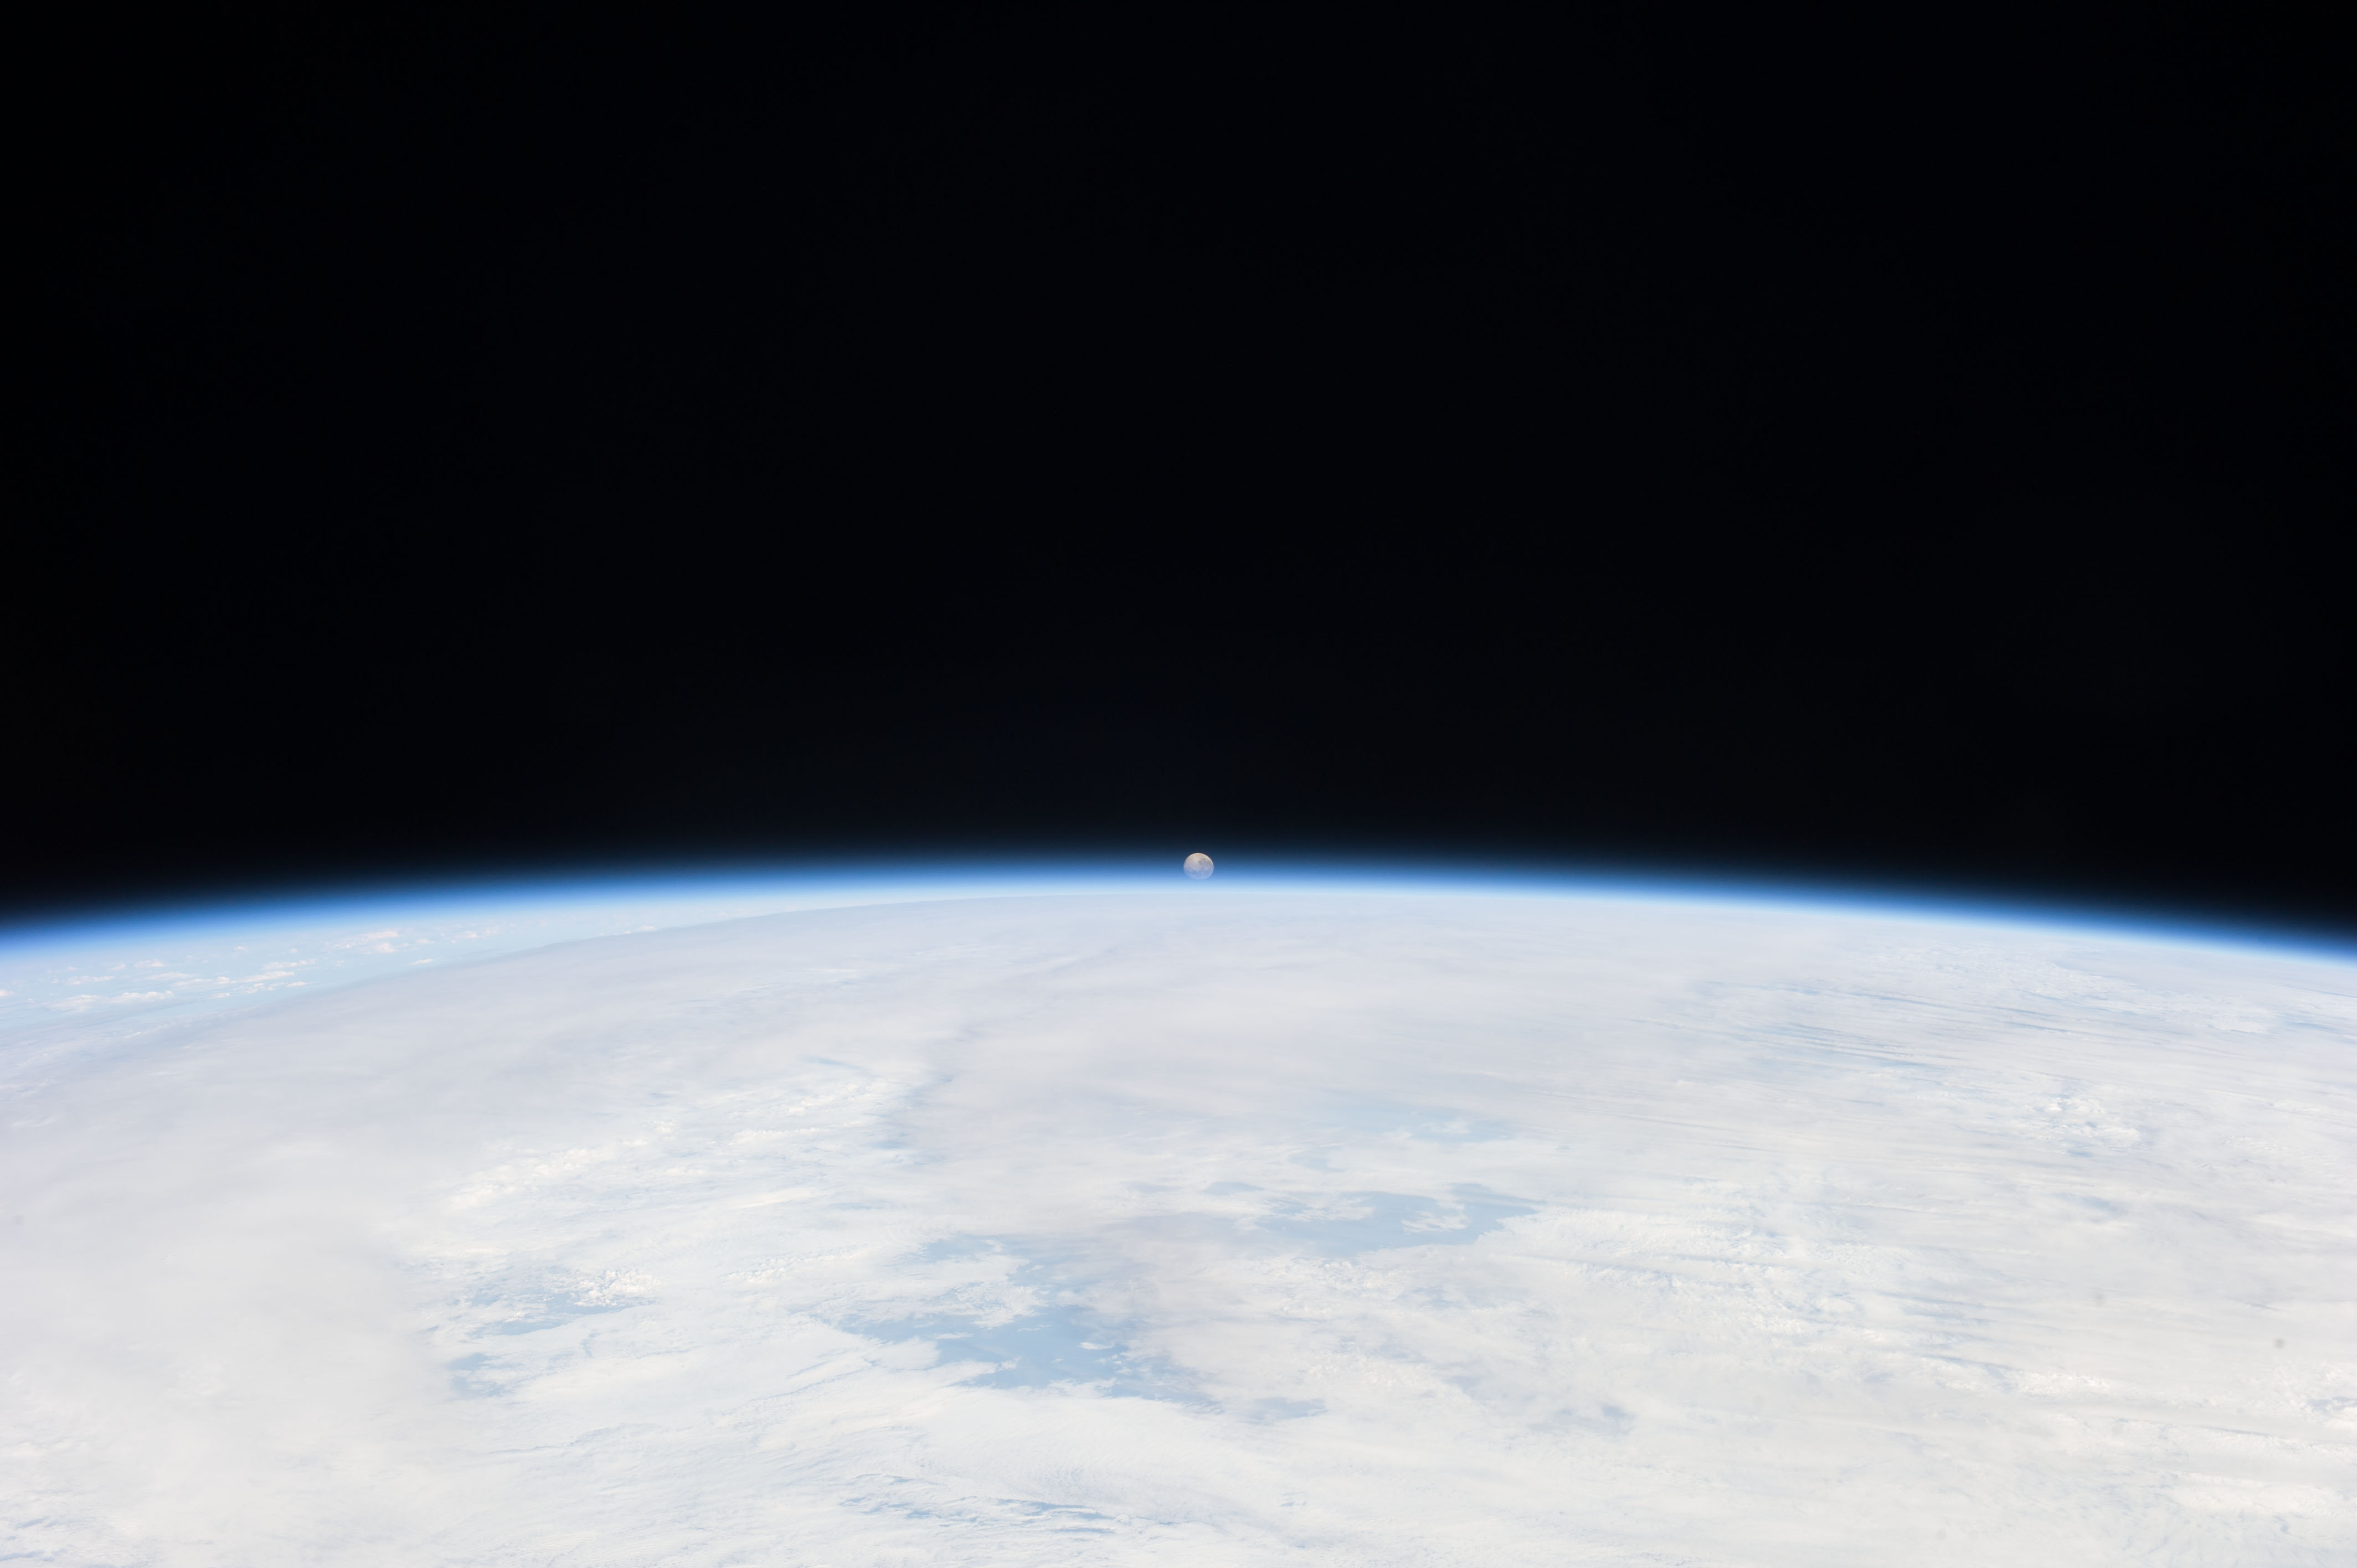 small moon setting in the distance over the curving horizon and the earth's atmosphere